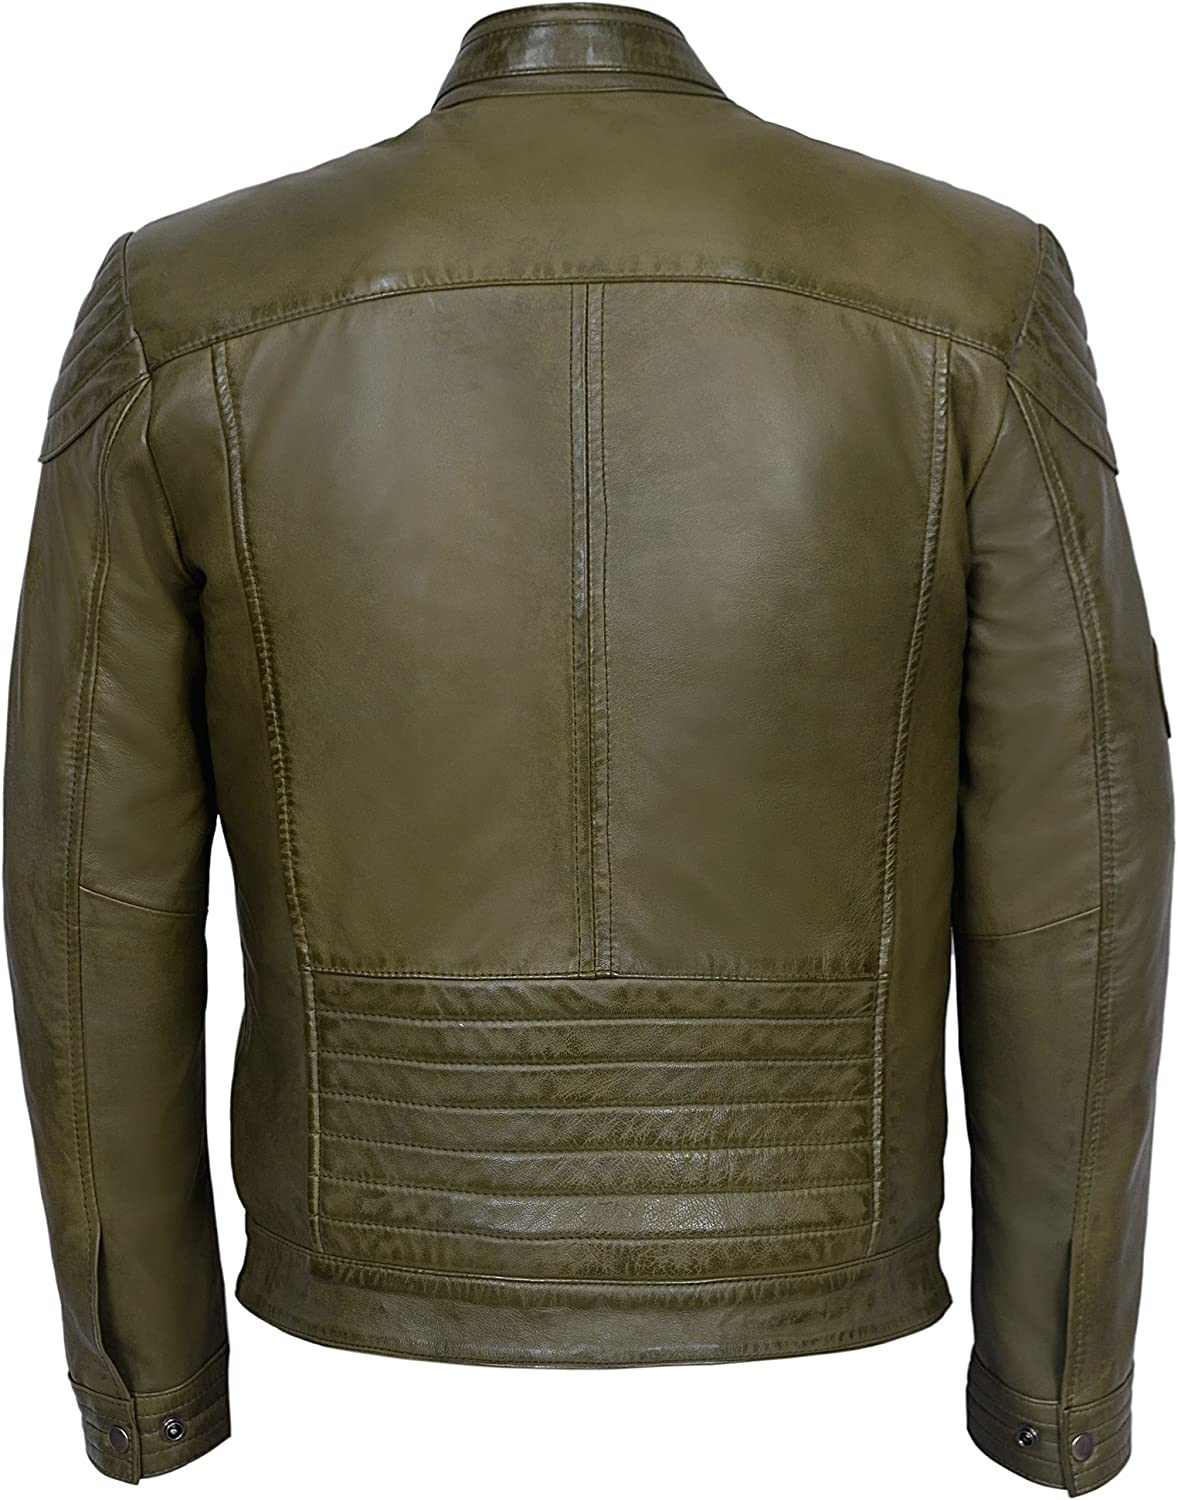 Infinity Mens Casual 100/% Sheepskin Black Nappa Leather Quilted Jacket 5XL